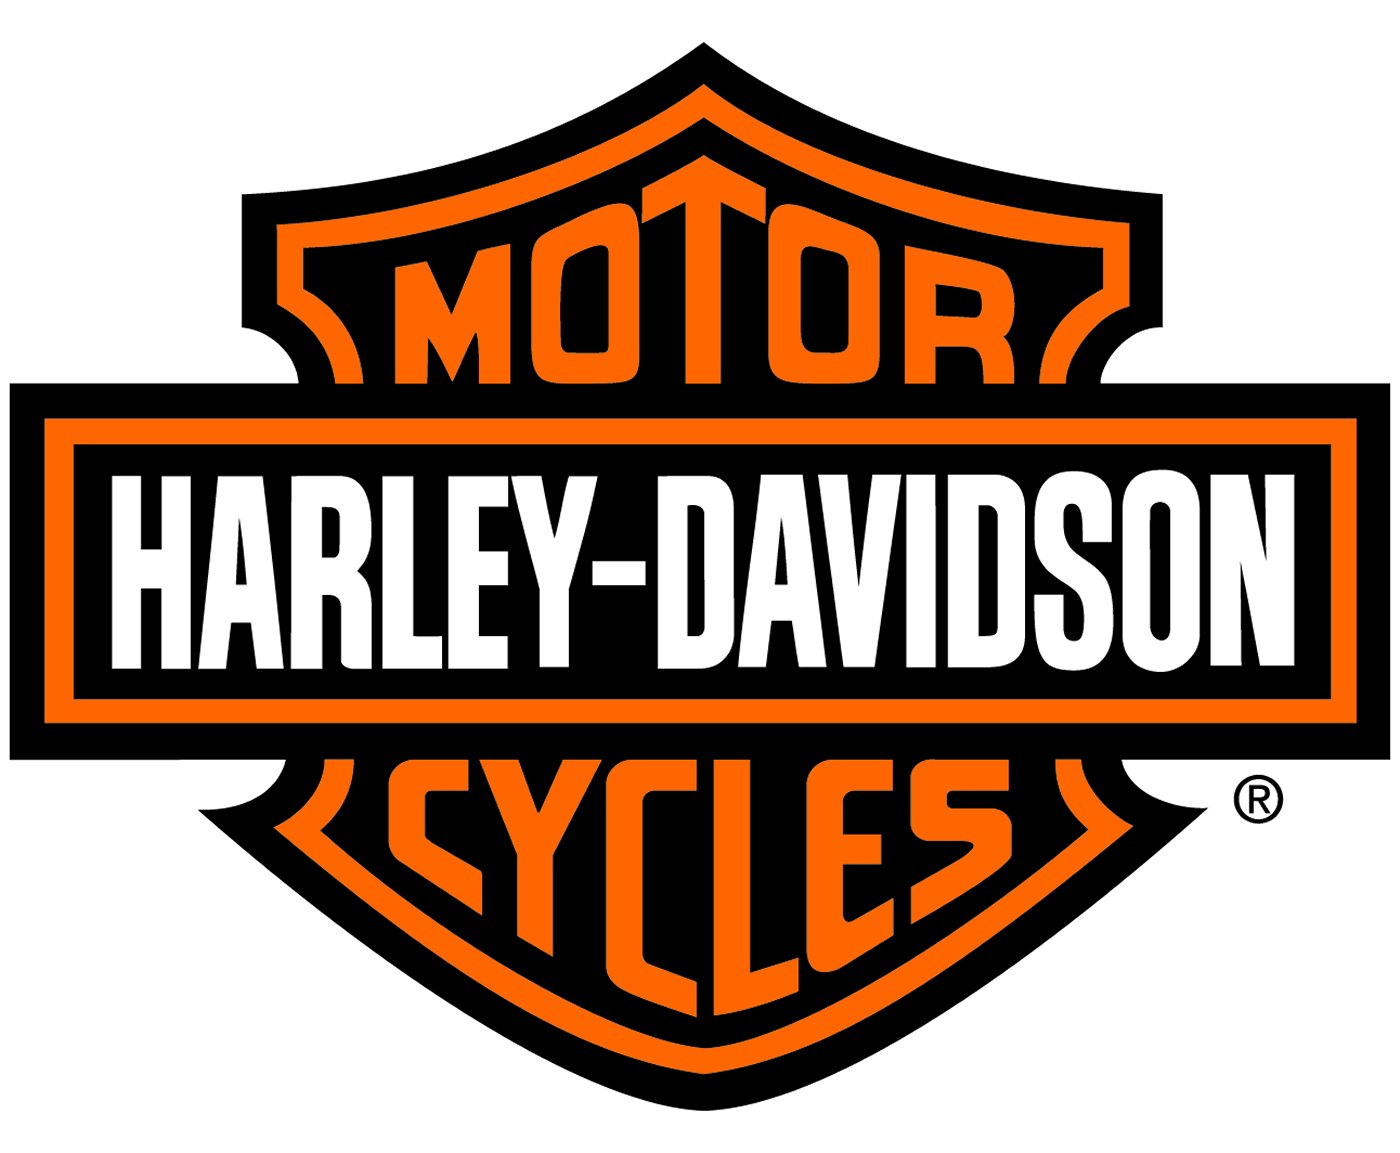 Call for anthropological expertise on Harley-Davidson motorcycles and American culture ...